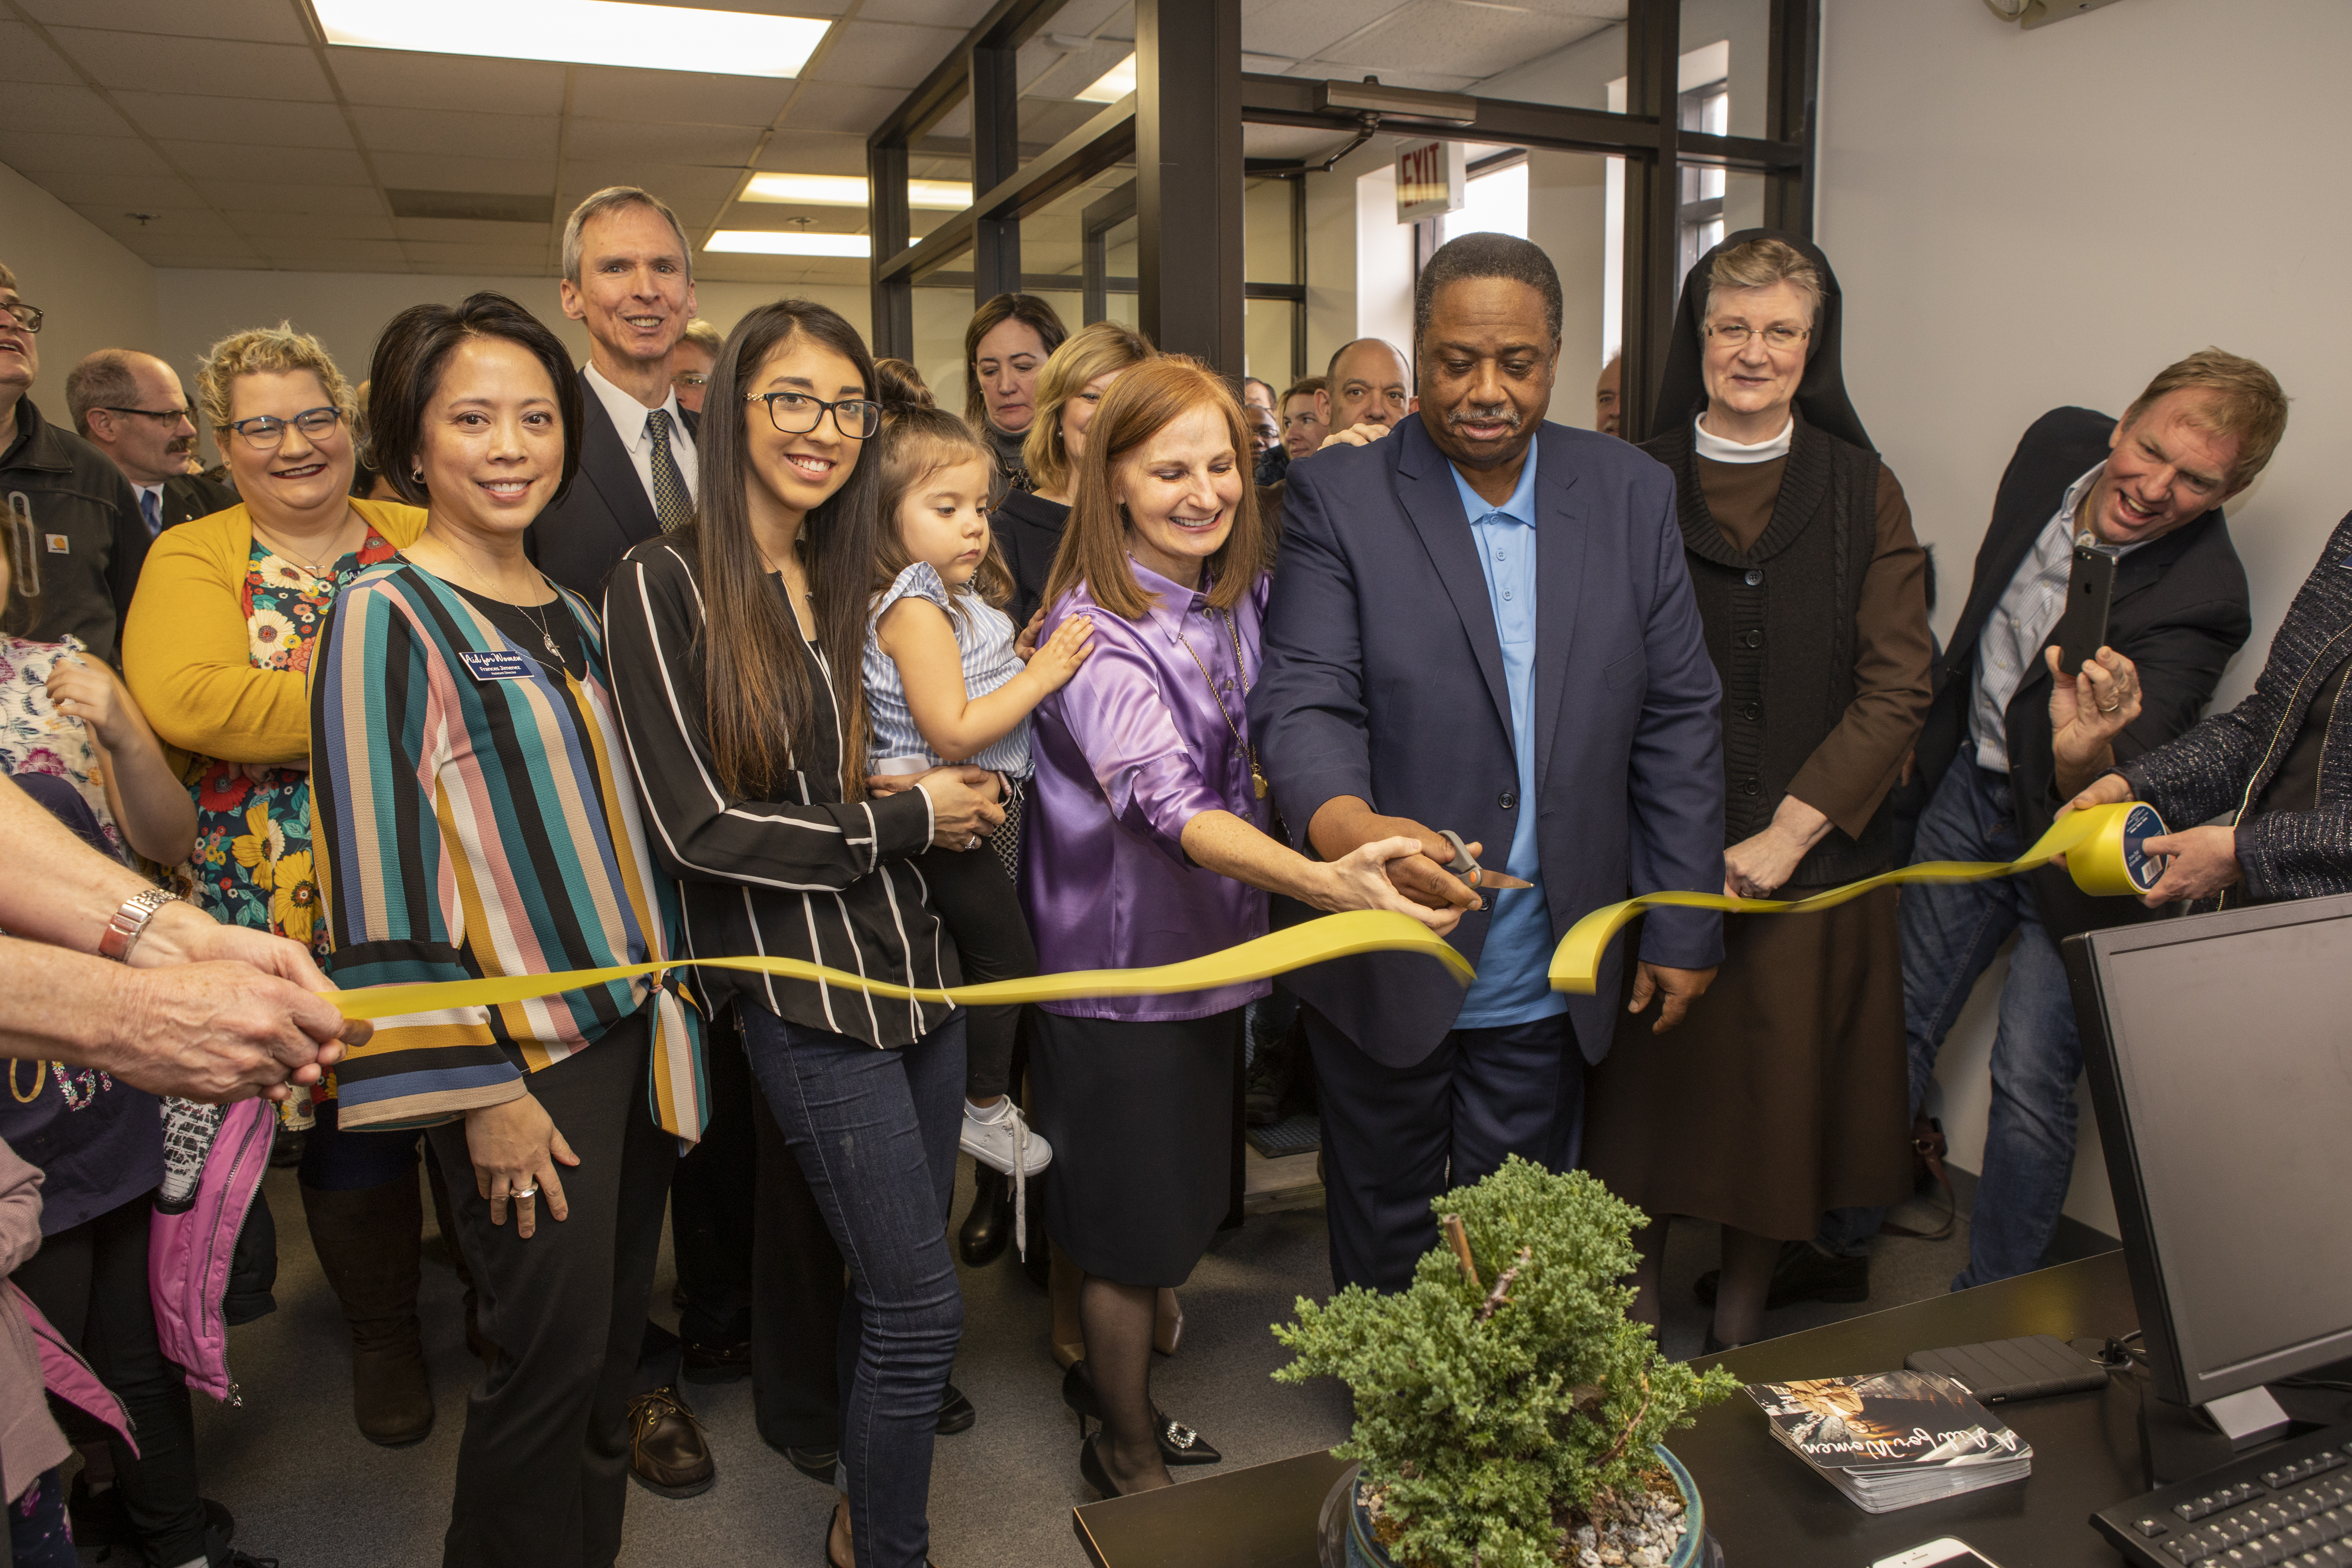 Oct. 25, we honor the new Aid for Women Center in Flossmoor.  Here is an image of the center opening, February, 2019.